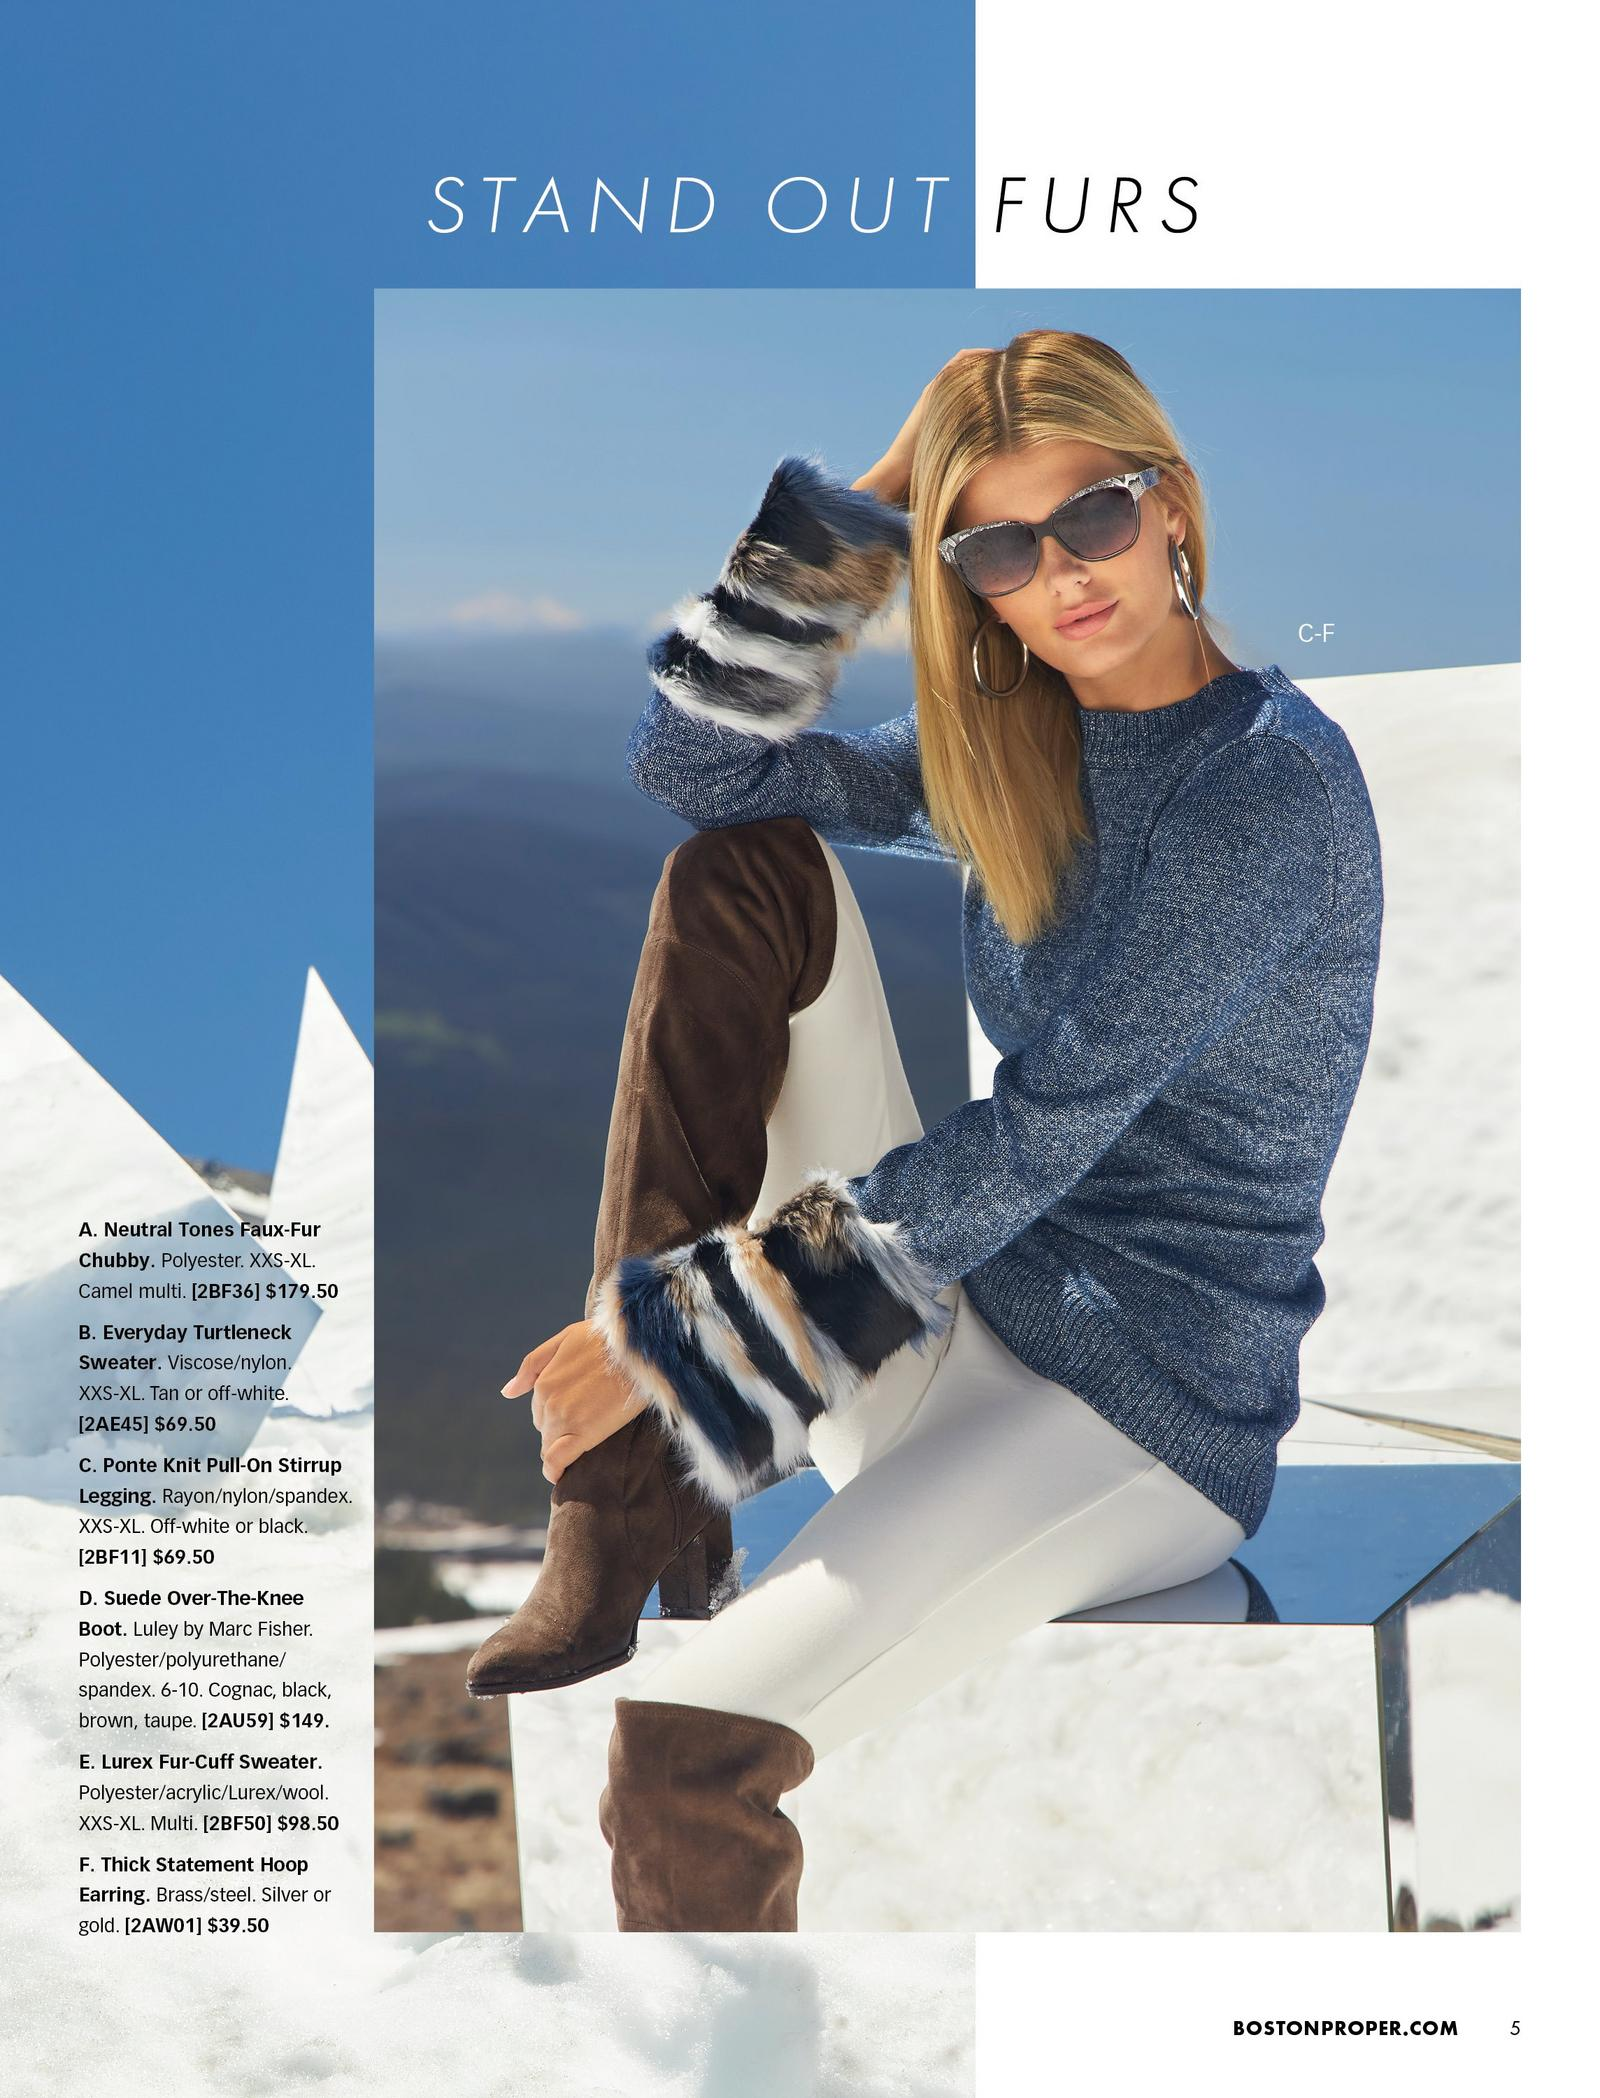 model wearing a navy sweater with faux-fur multicolored cuffs, white leggings, silver hoop earrings, and brown over-the-knee boots.